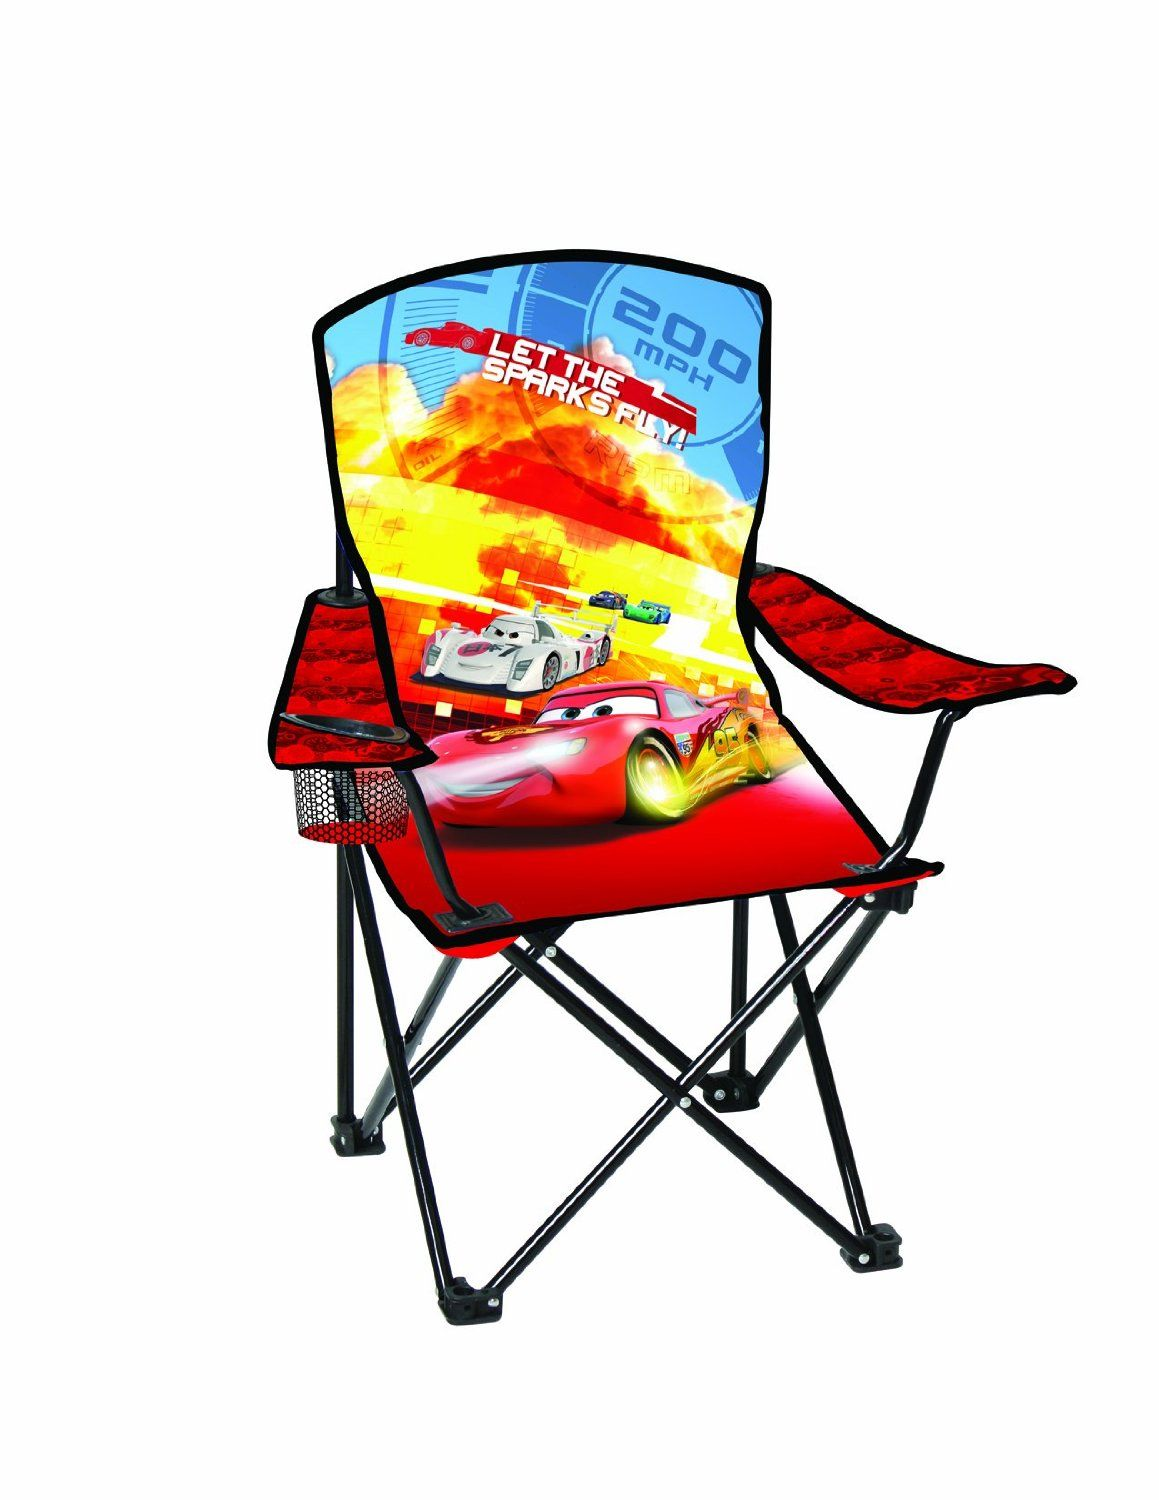 Kids Sports Chairs Mid Century Modern Arm Amazon Disney Youth Folding Chair With Armrest And